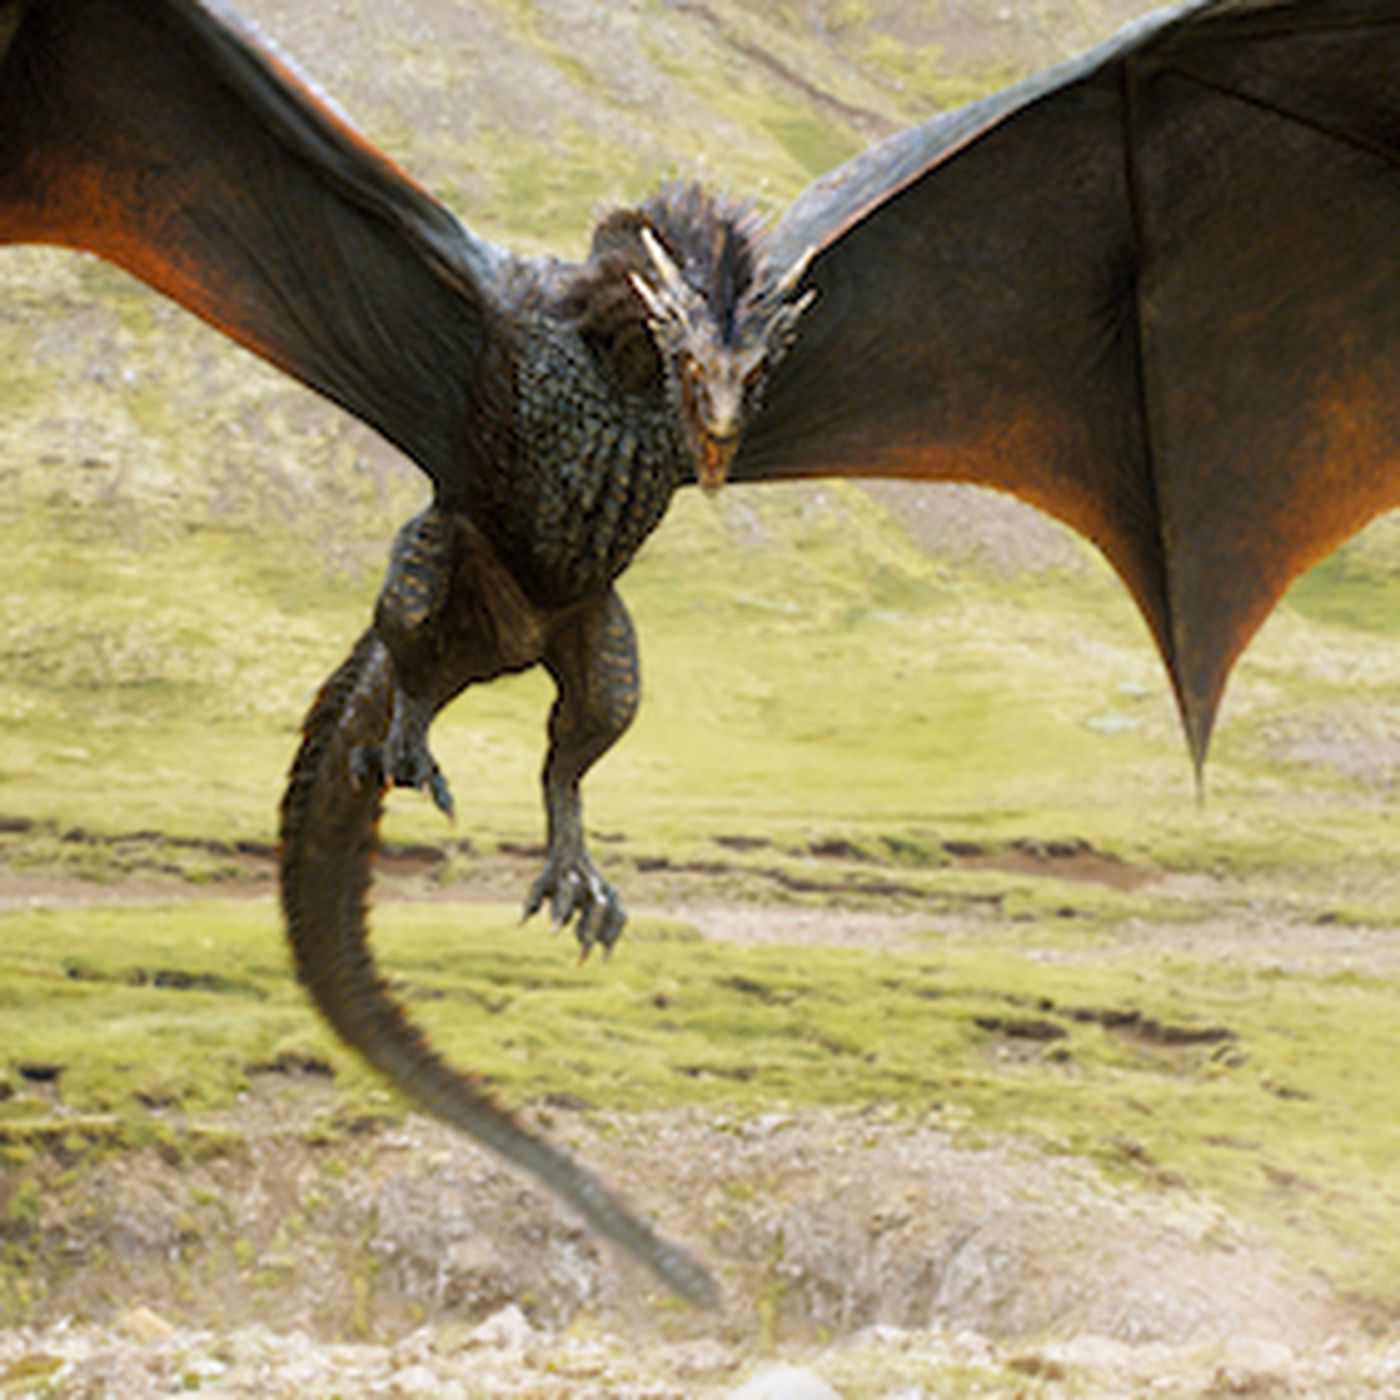 Game Of Thrones Season 7 The Power And Limits Of Daenerys Targaryens Dragons Explained Vox